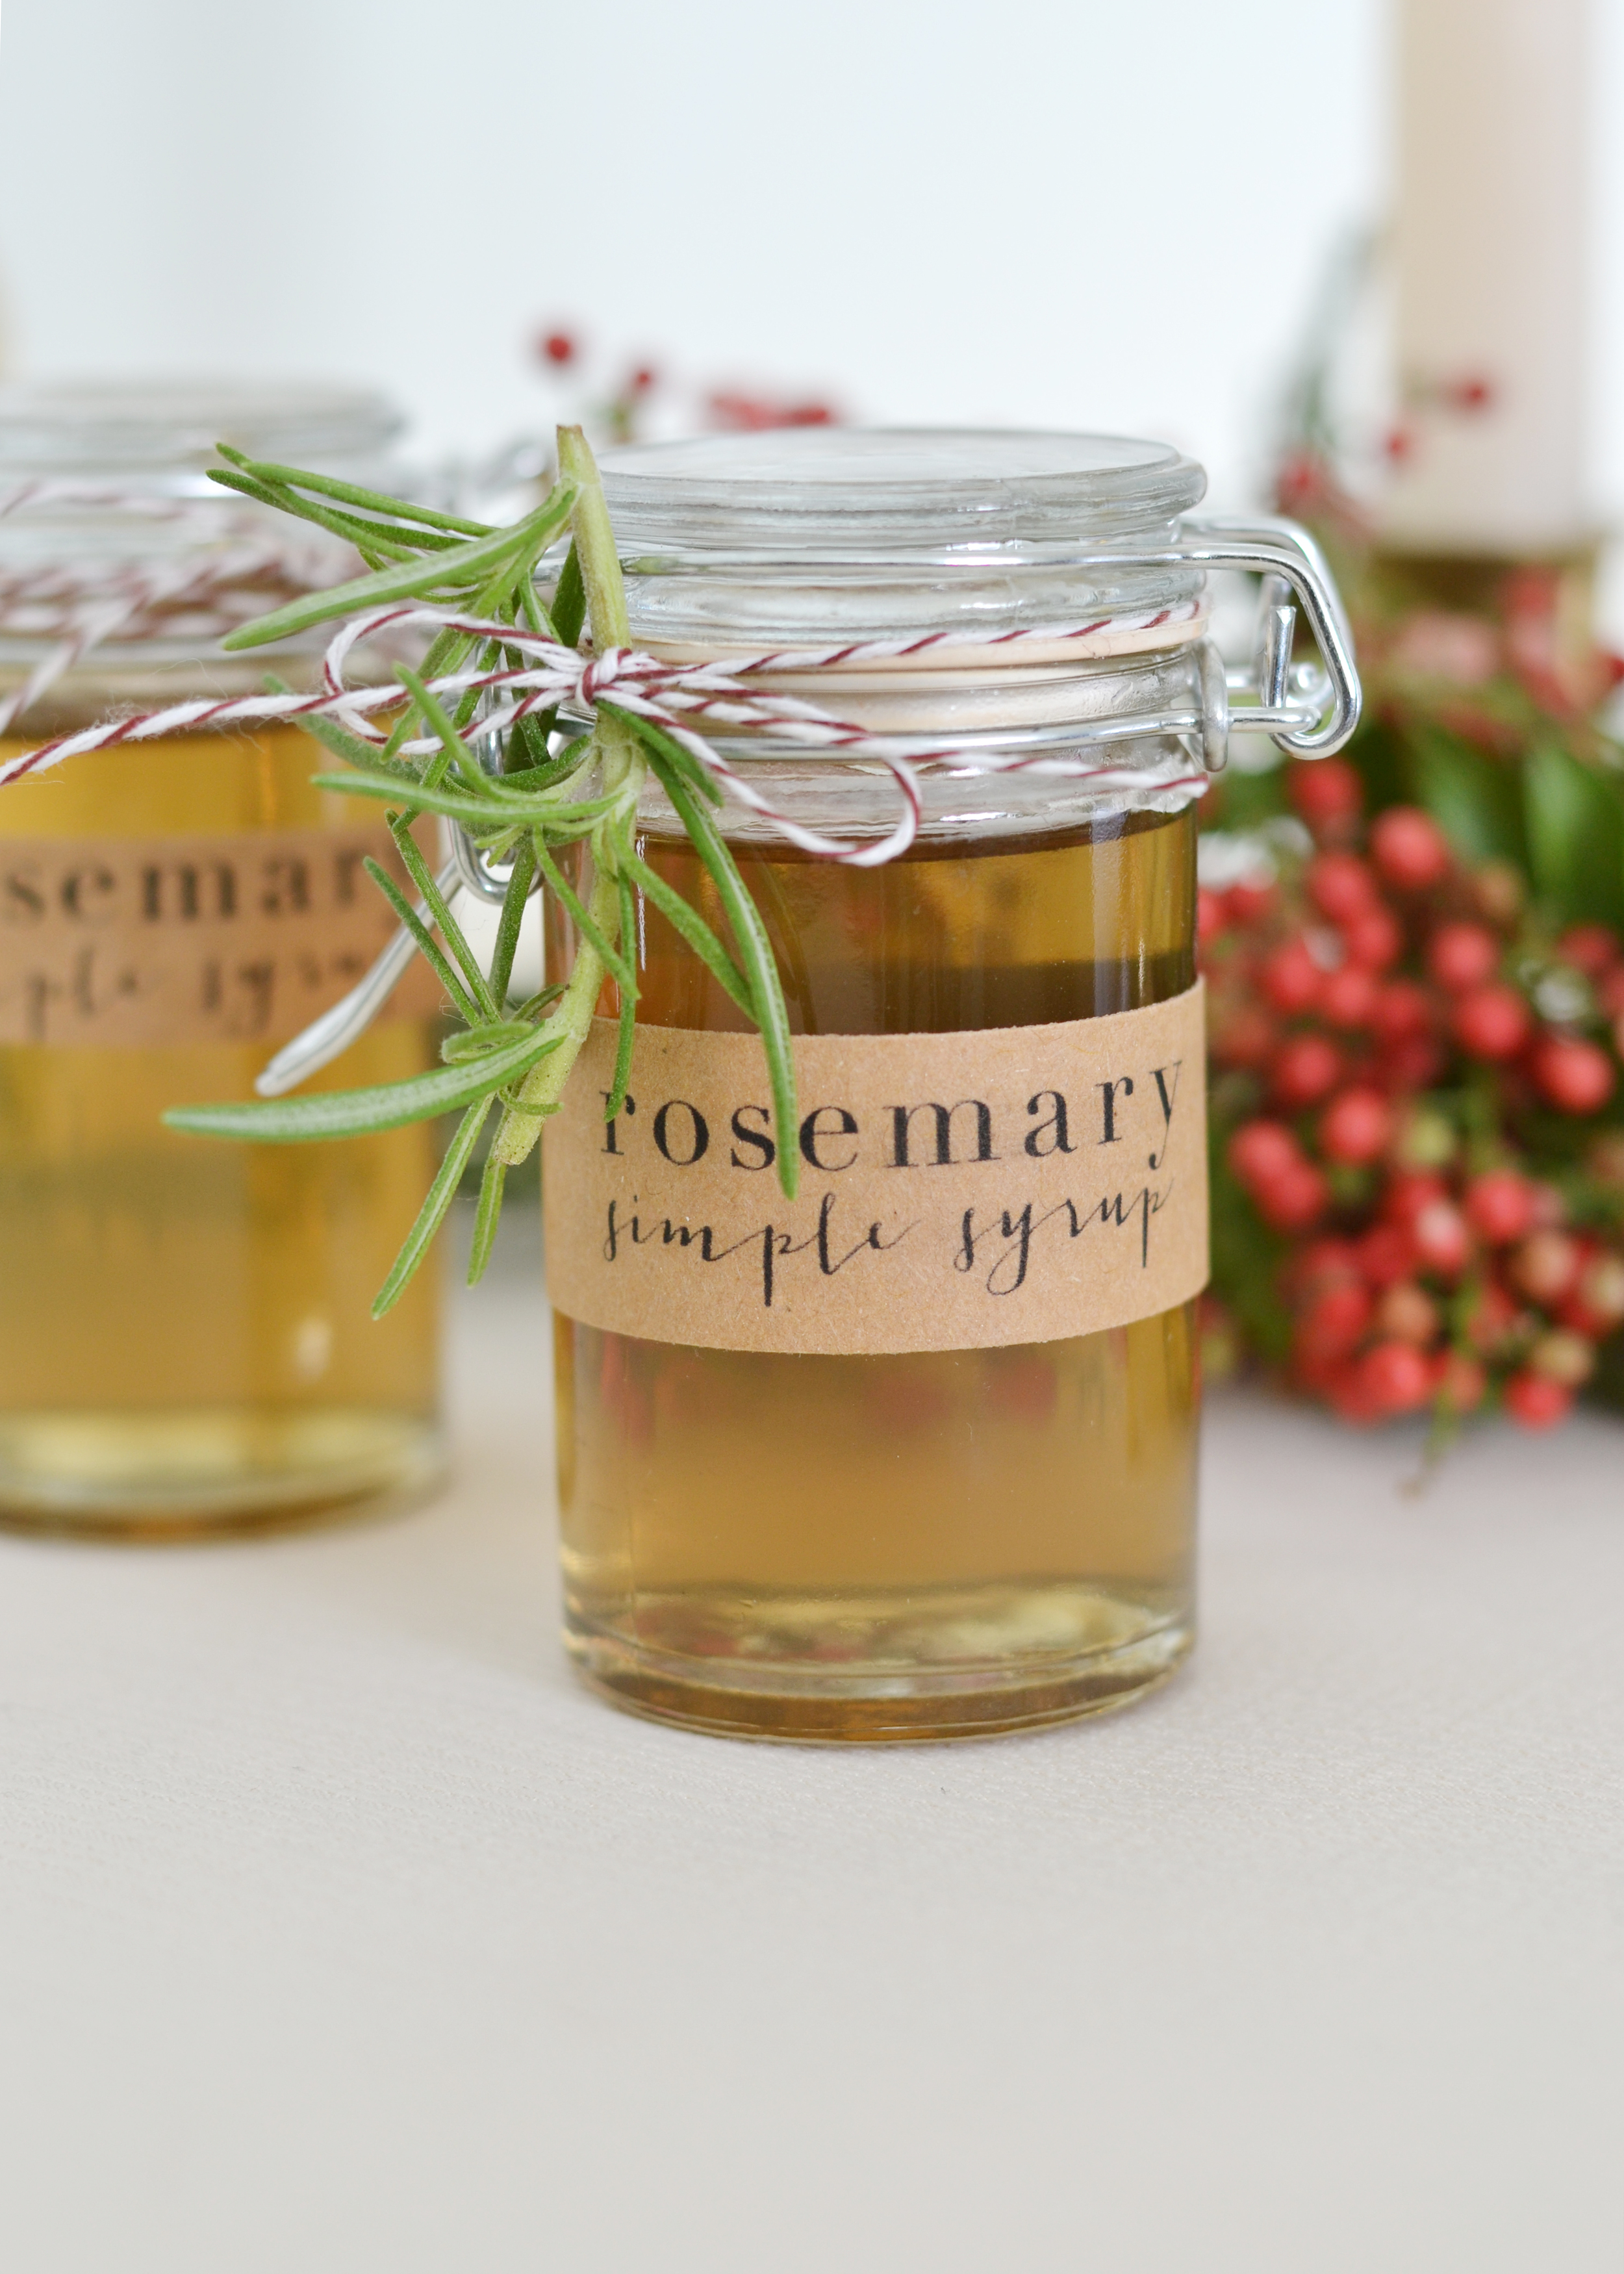 Make this rosemary simple syrup to give as a gift! From boxwoodavenue.com